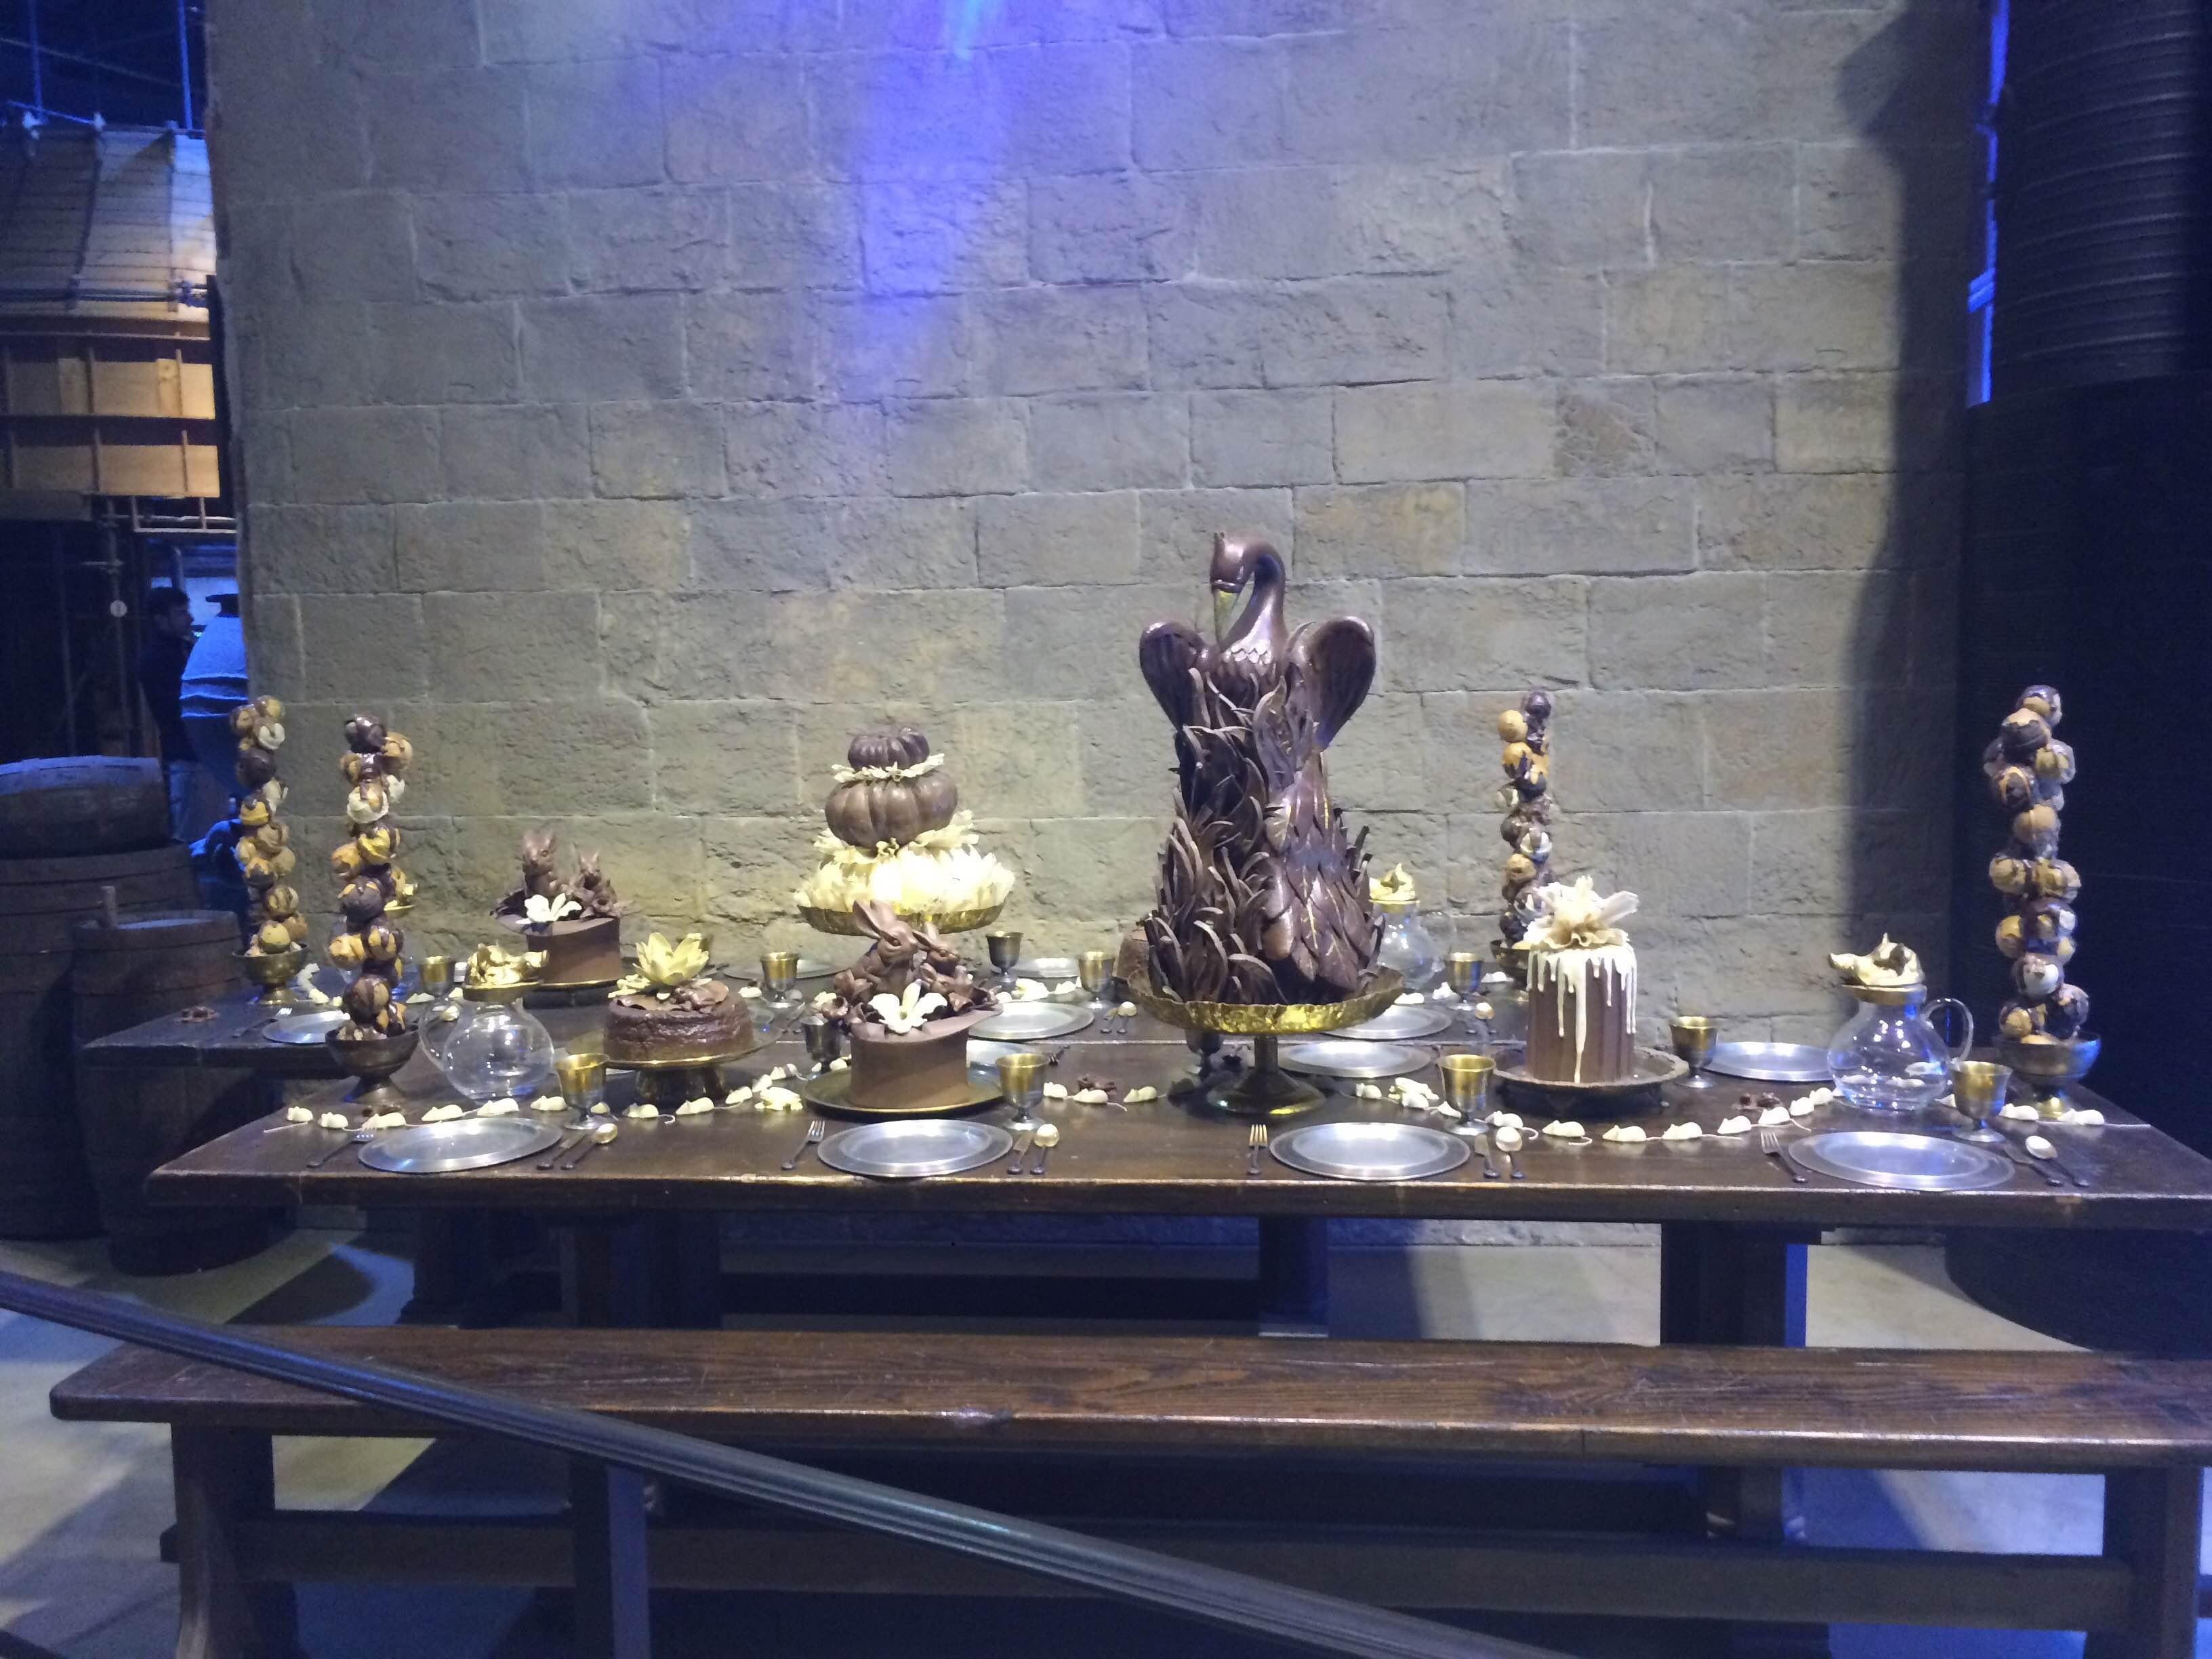 Turismo en The Making of Harry Potter